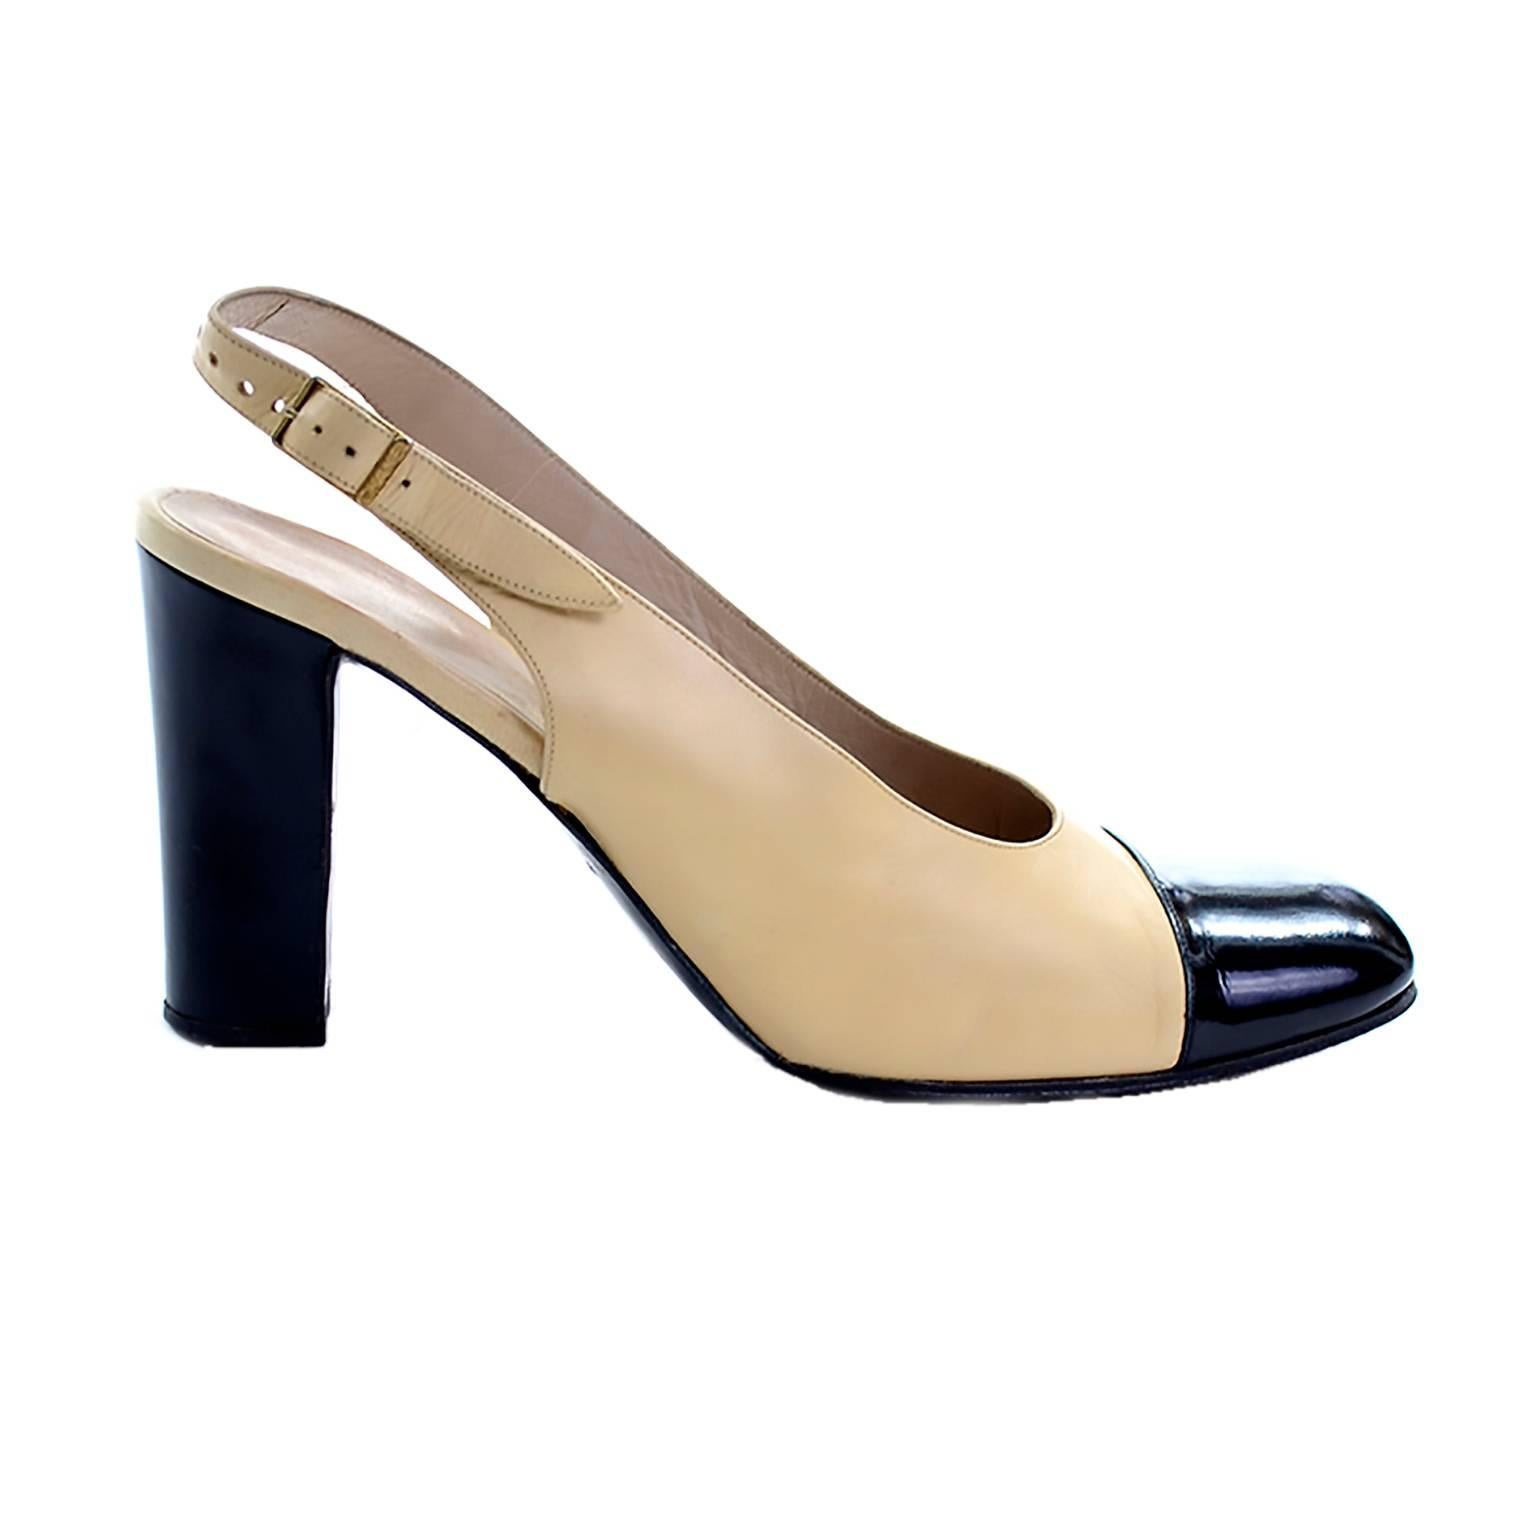 a98fccecac6 Chanel Vintage Cream and Black Slingback Block Heel Shoes 39.5 at 1stdibs